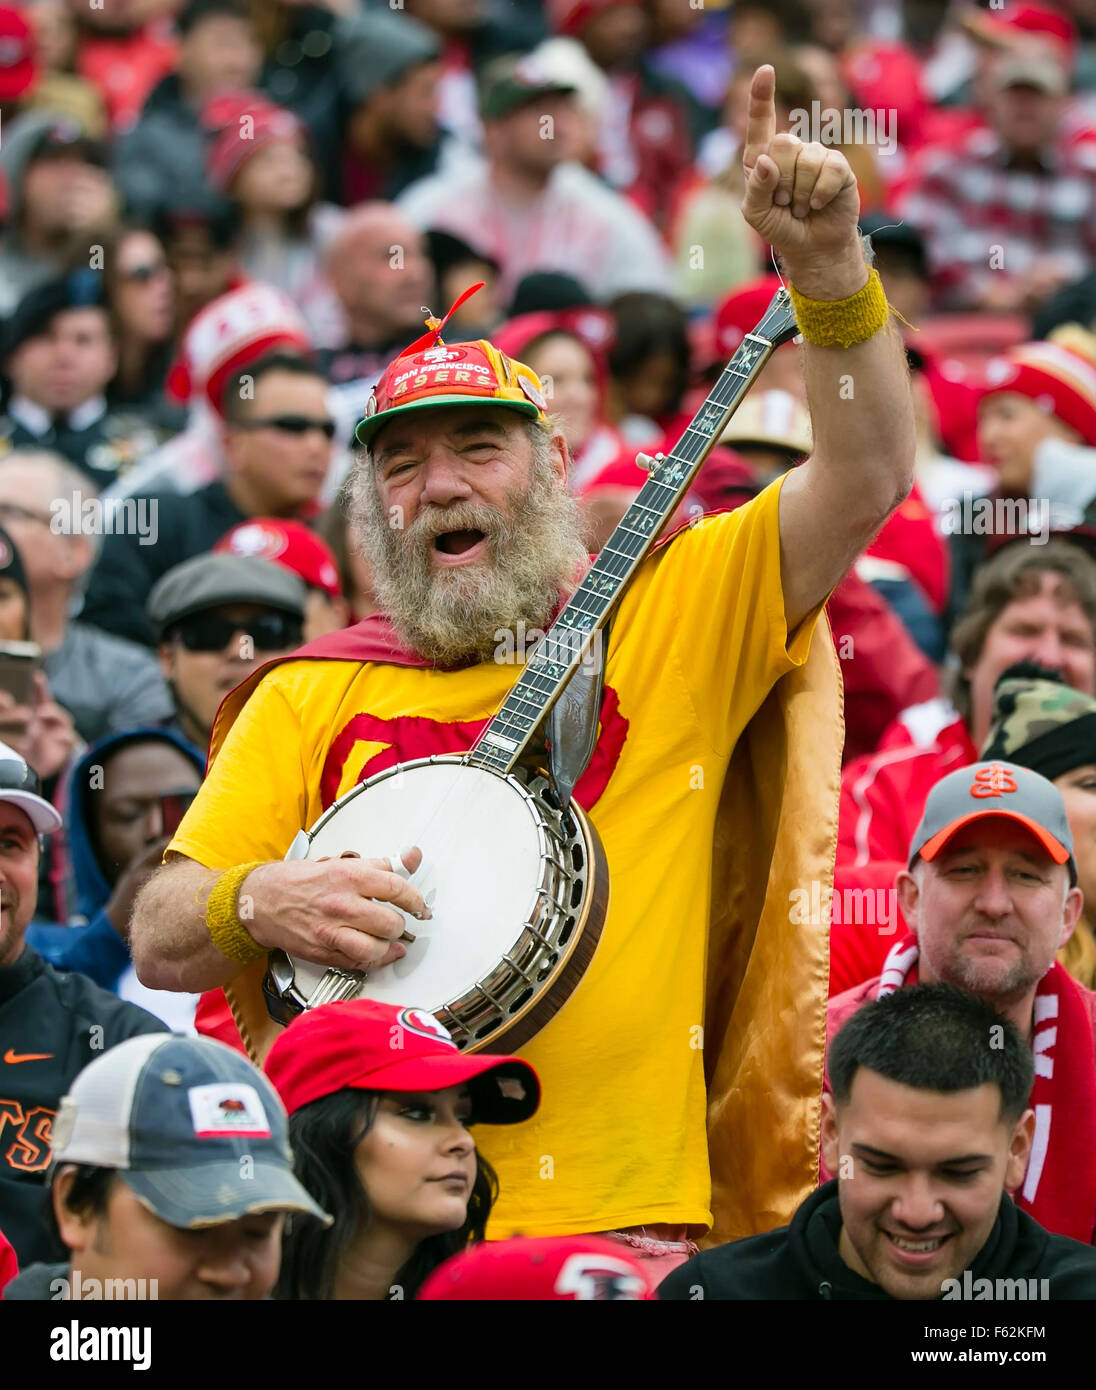 The mascot for the san francisco 49ers stock photos the mascot for 8th nov 2015 unofficial 49ers mascot banjo man performs altavistaventures Choice Image